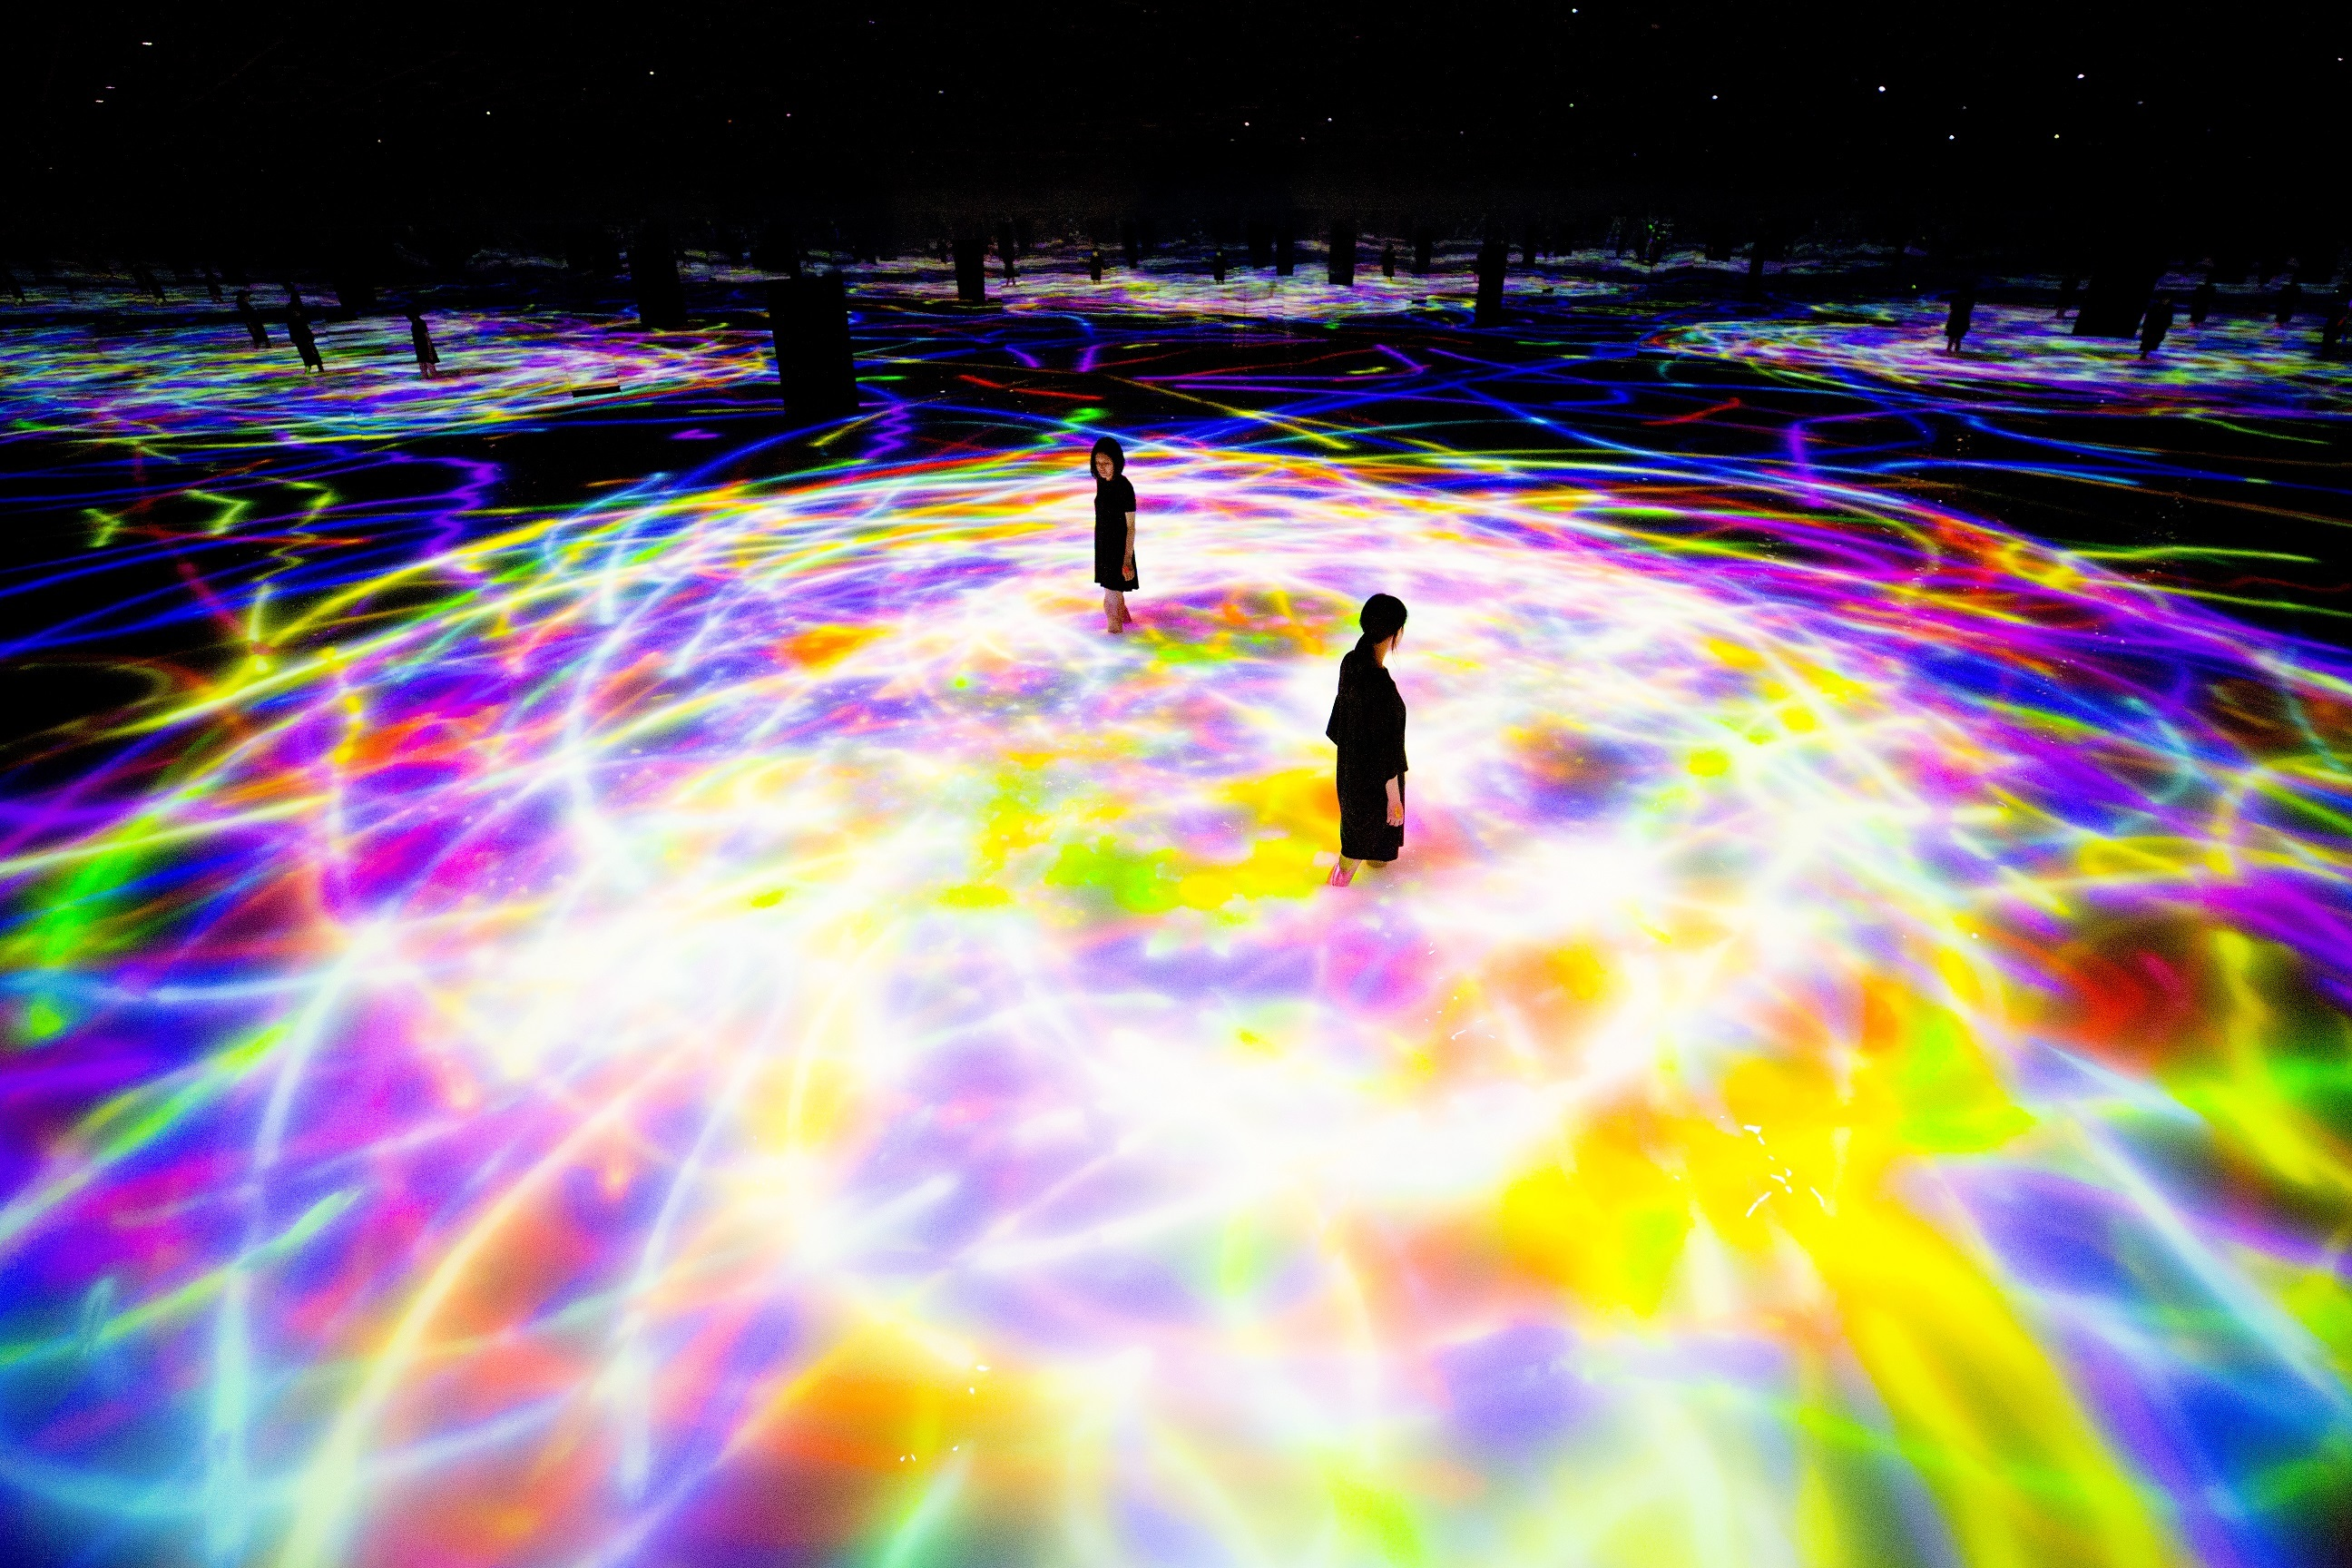 Drawing on the Water Surface Created by the Dance of Koi and People - Infinity  teamLab, 2016-2018, Interactive Digital Installation, Endless, Sound: Hideaki Takahash